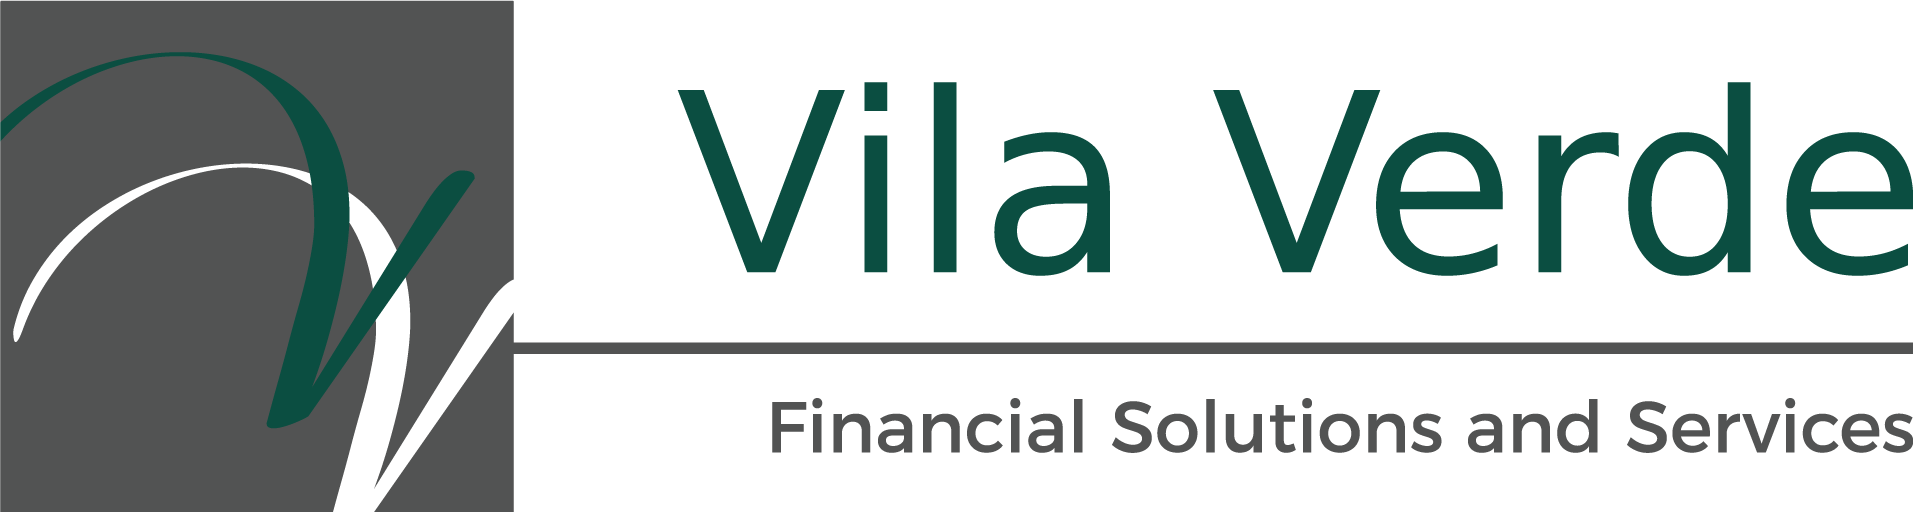 Vila Verde Financial Solutions and Services | VVFSS | Toronto Paralegal Firm | Legal Services